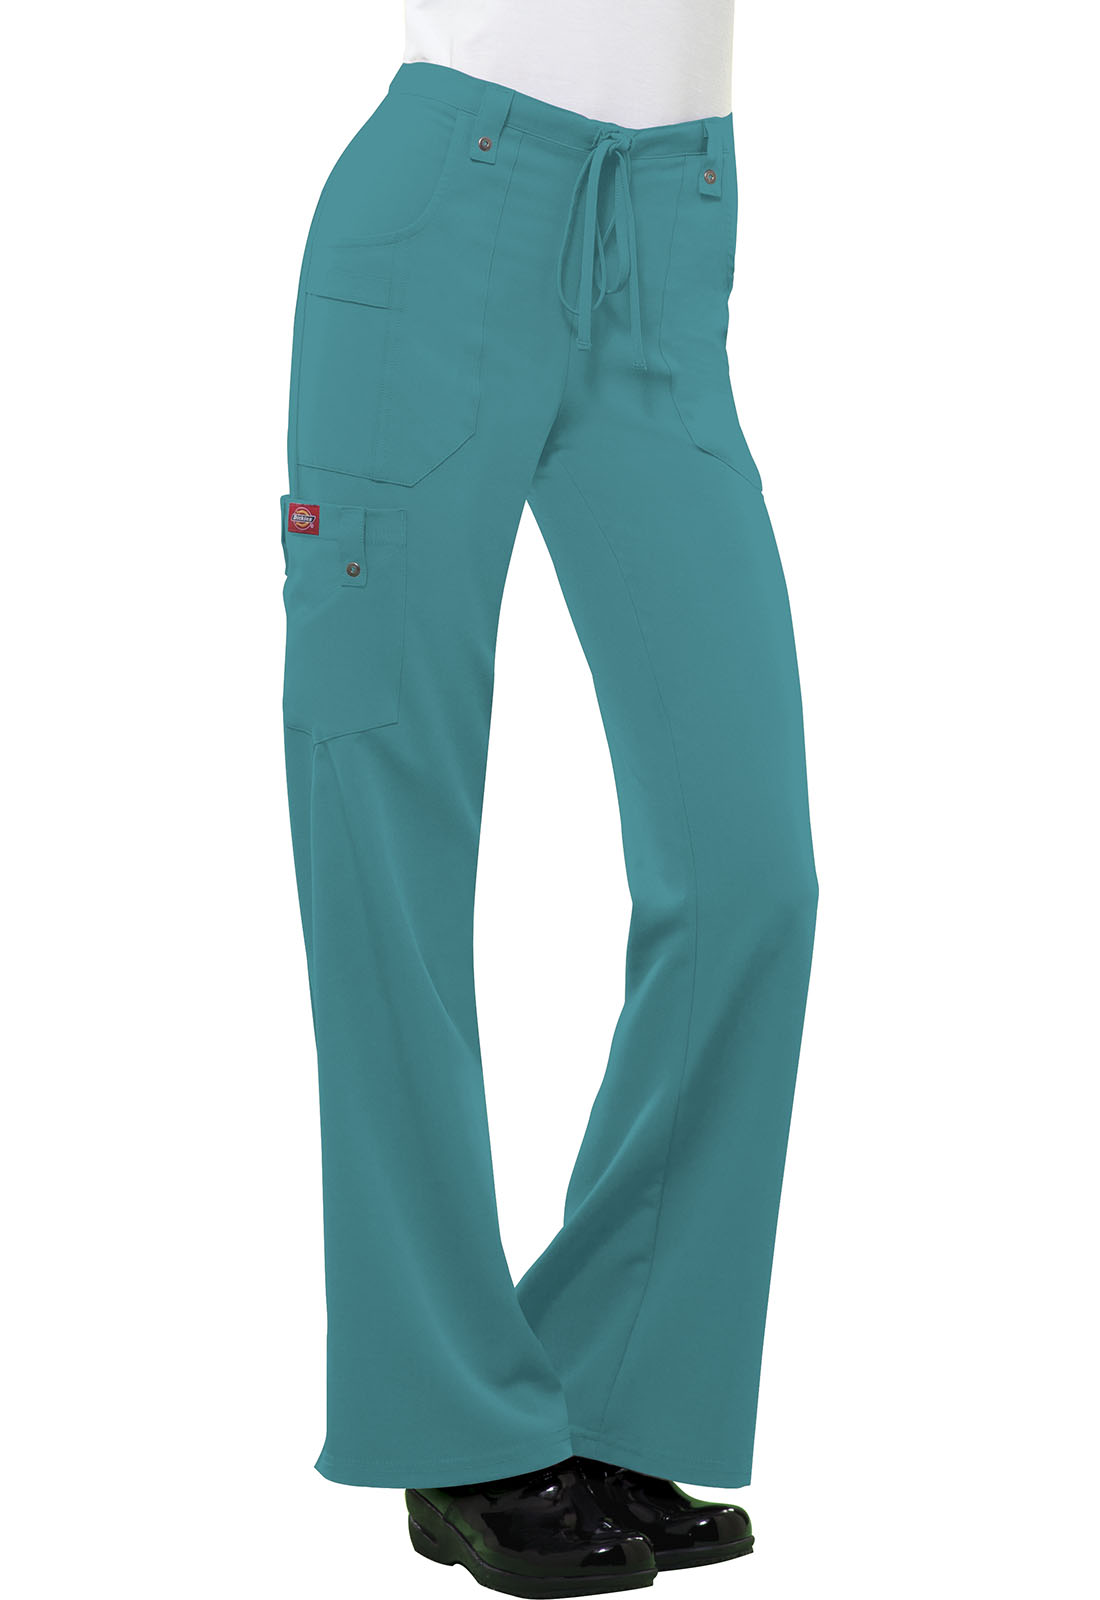 d584f1140cd Xtreme Stretch Mid Rise Drawstring Cargo Pant in Teal 82011-DTLZ ...